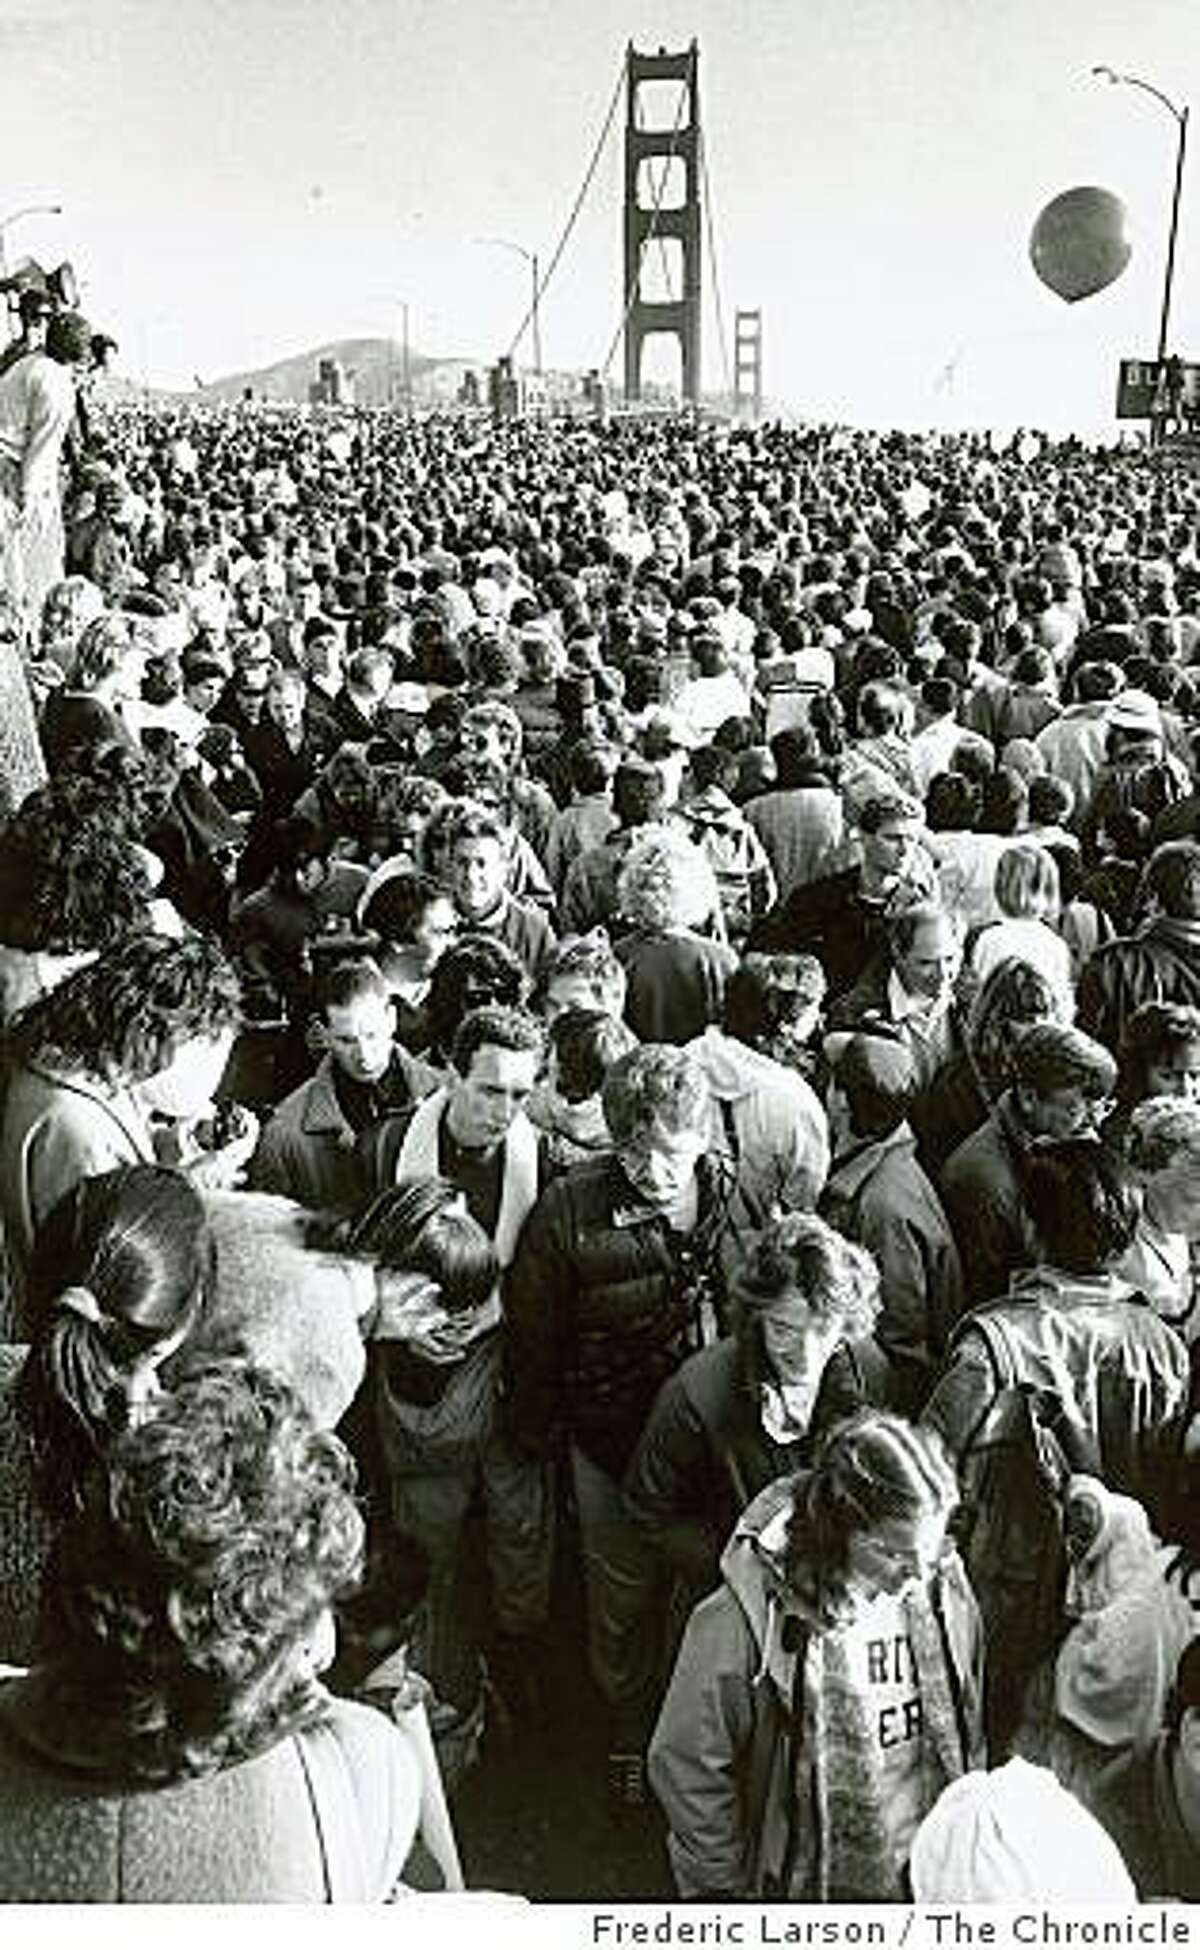 Because it is May 24, 1987, and hundreds of thousands took part in the bridge walk to celebrate the 50th anniversary of the span.